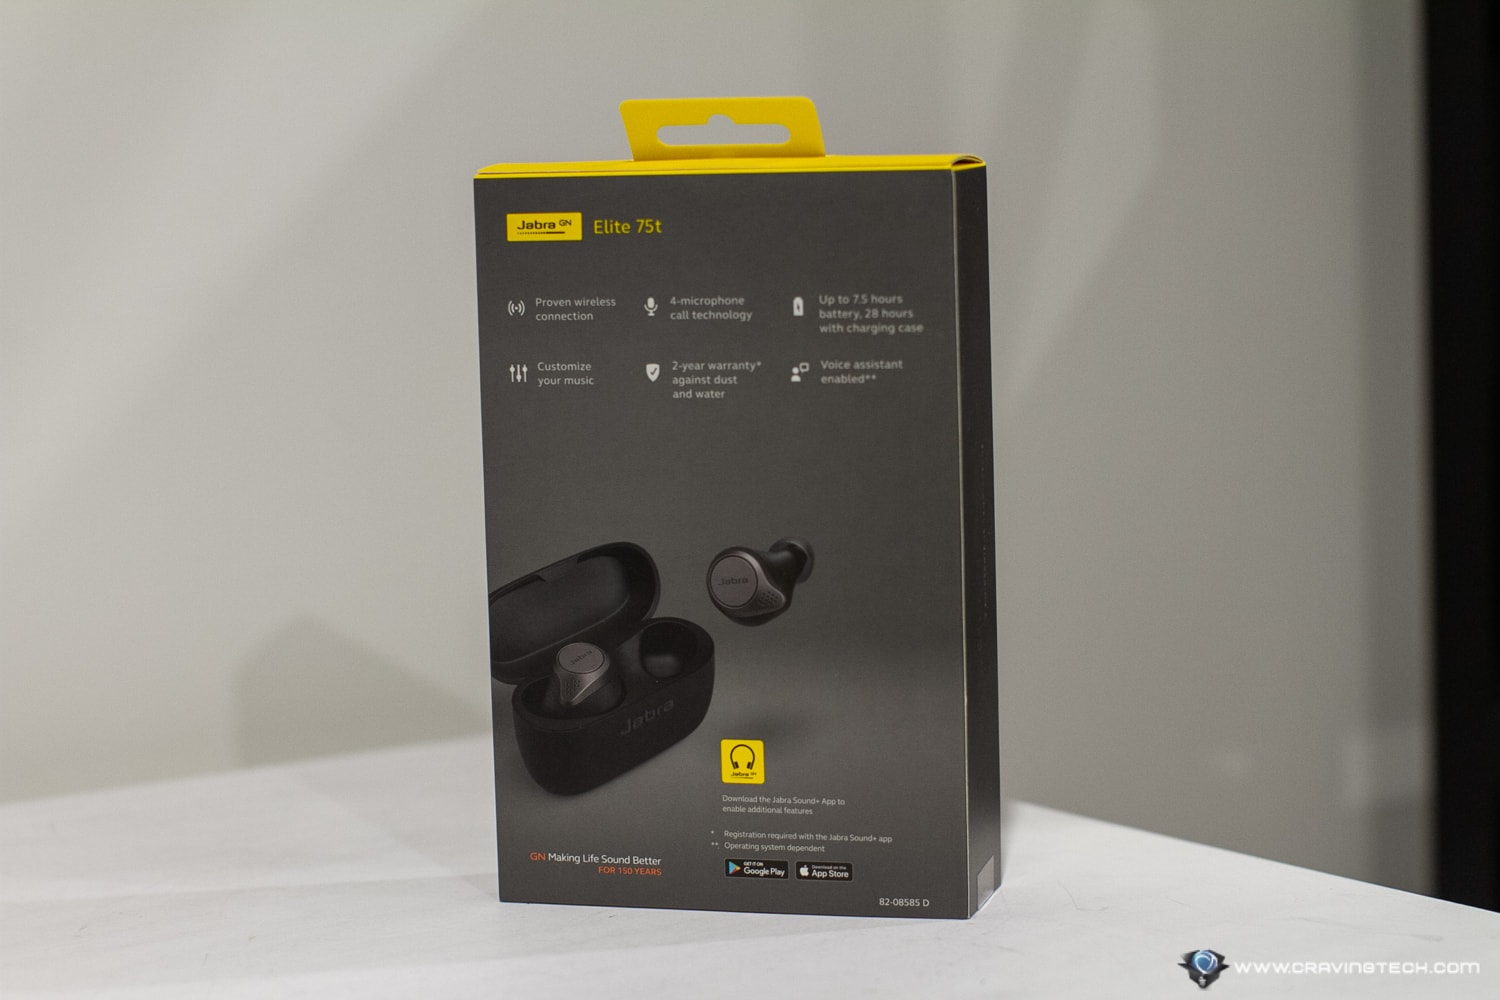 Jabra Elite 75t Packaging and Unboxing